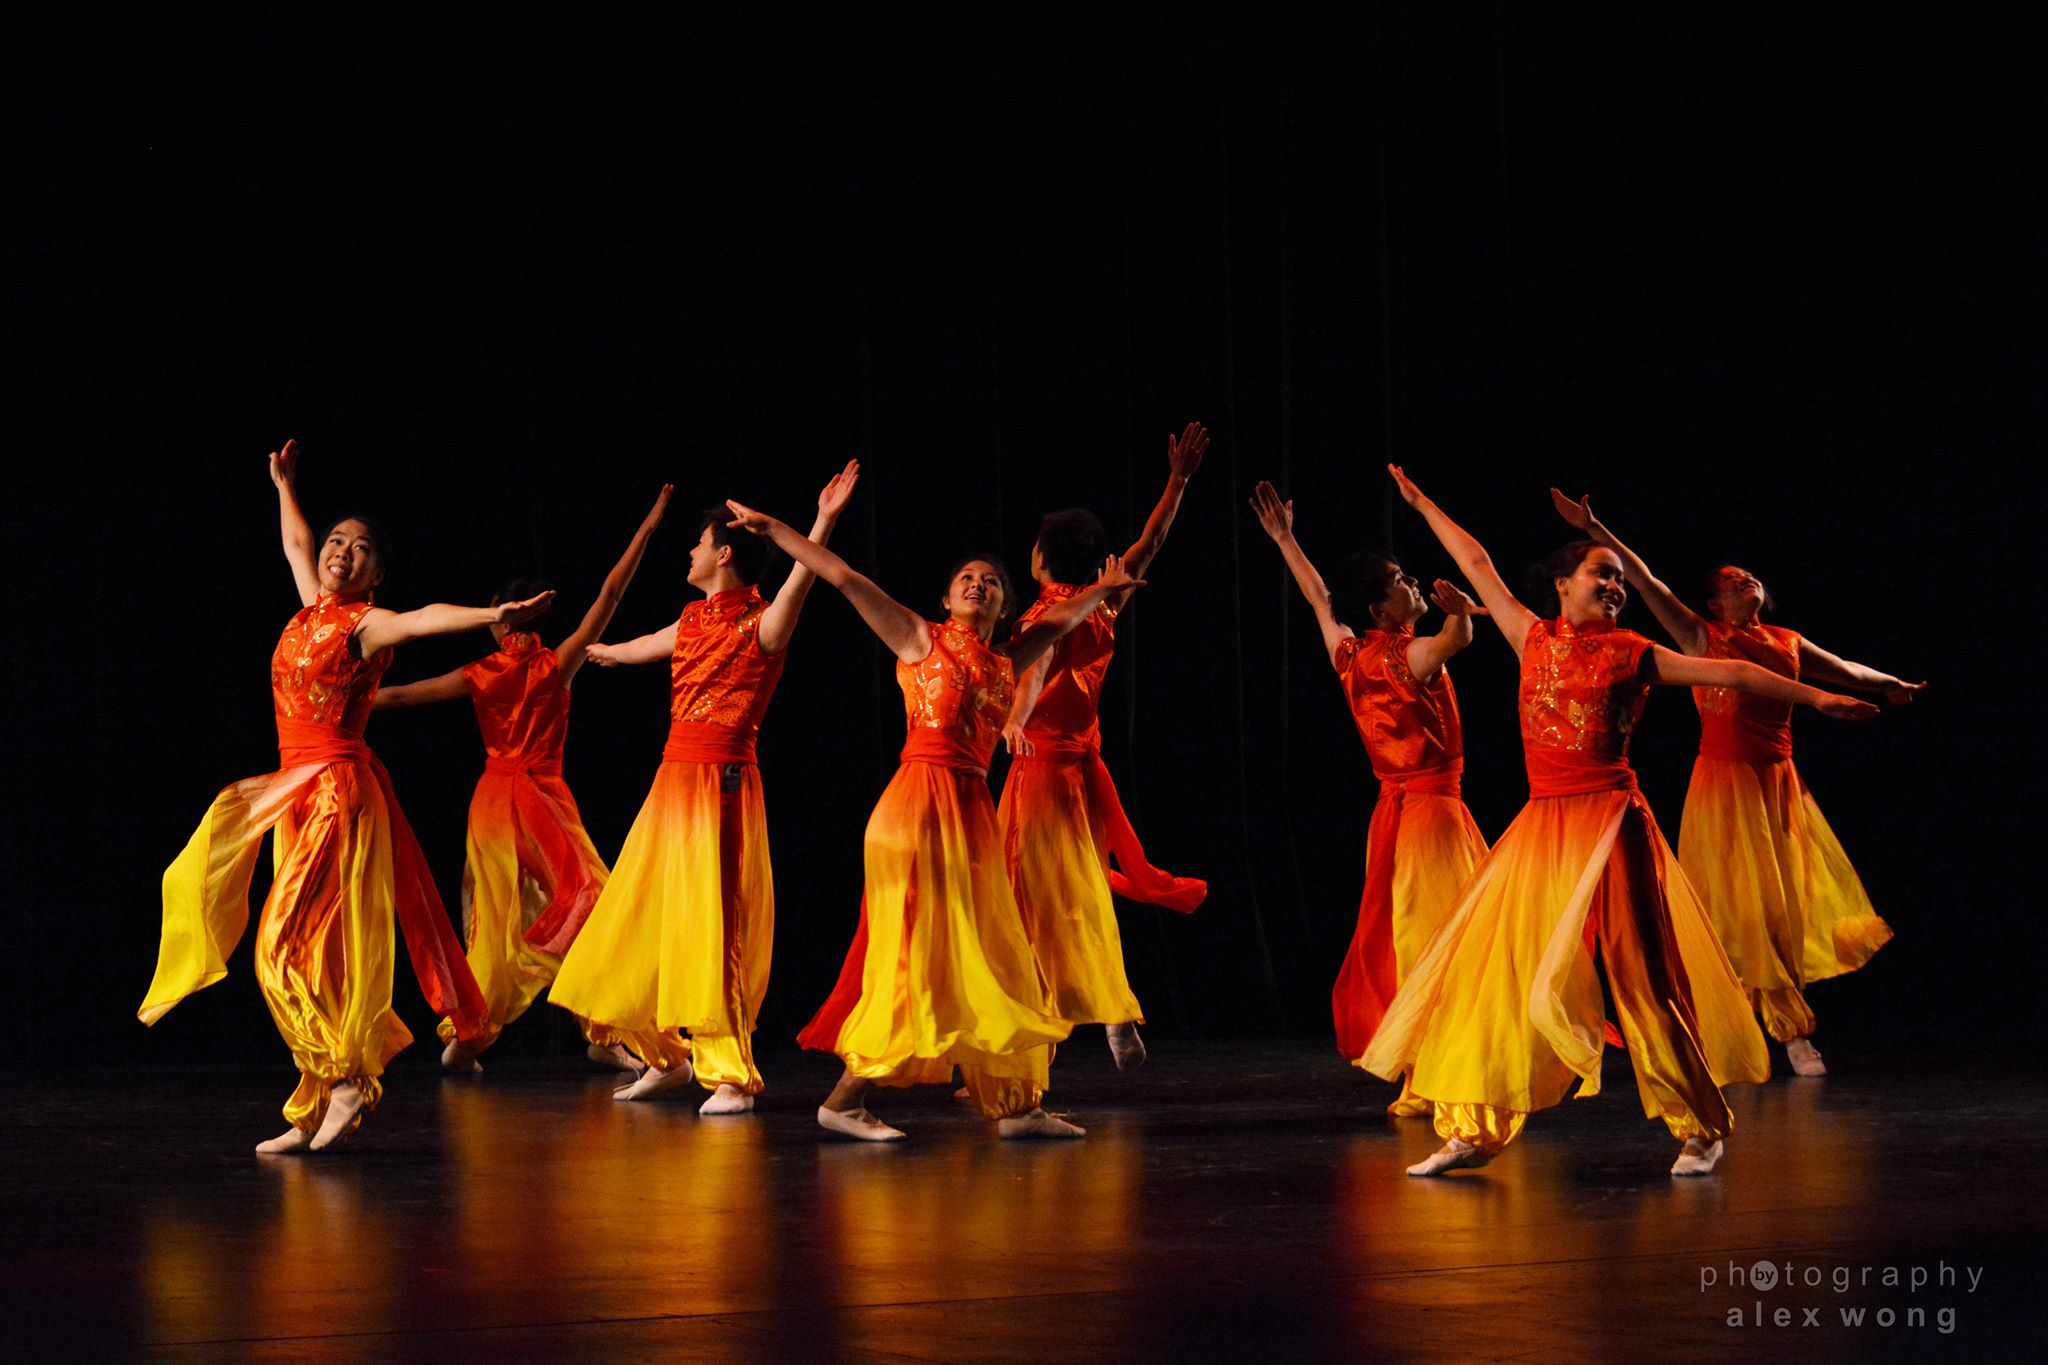 chinese culture dance - photo #25